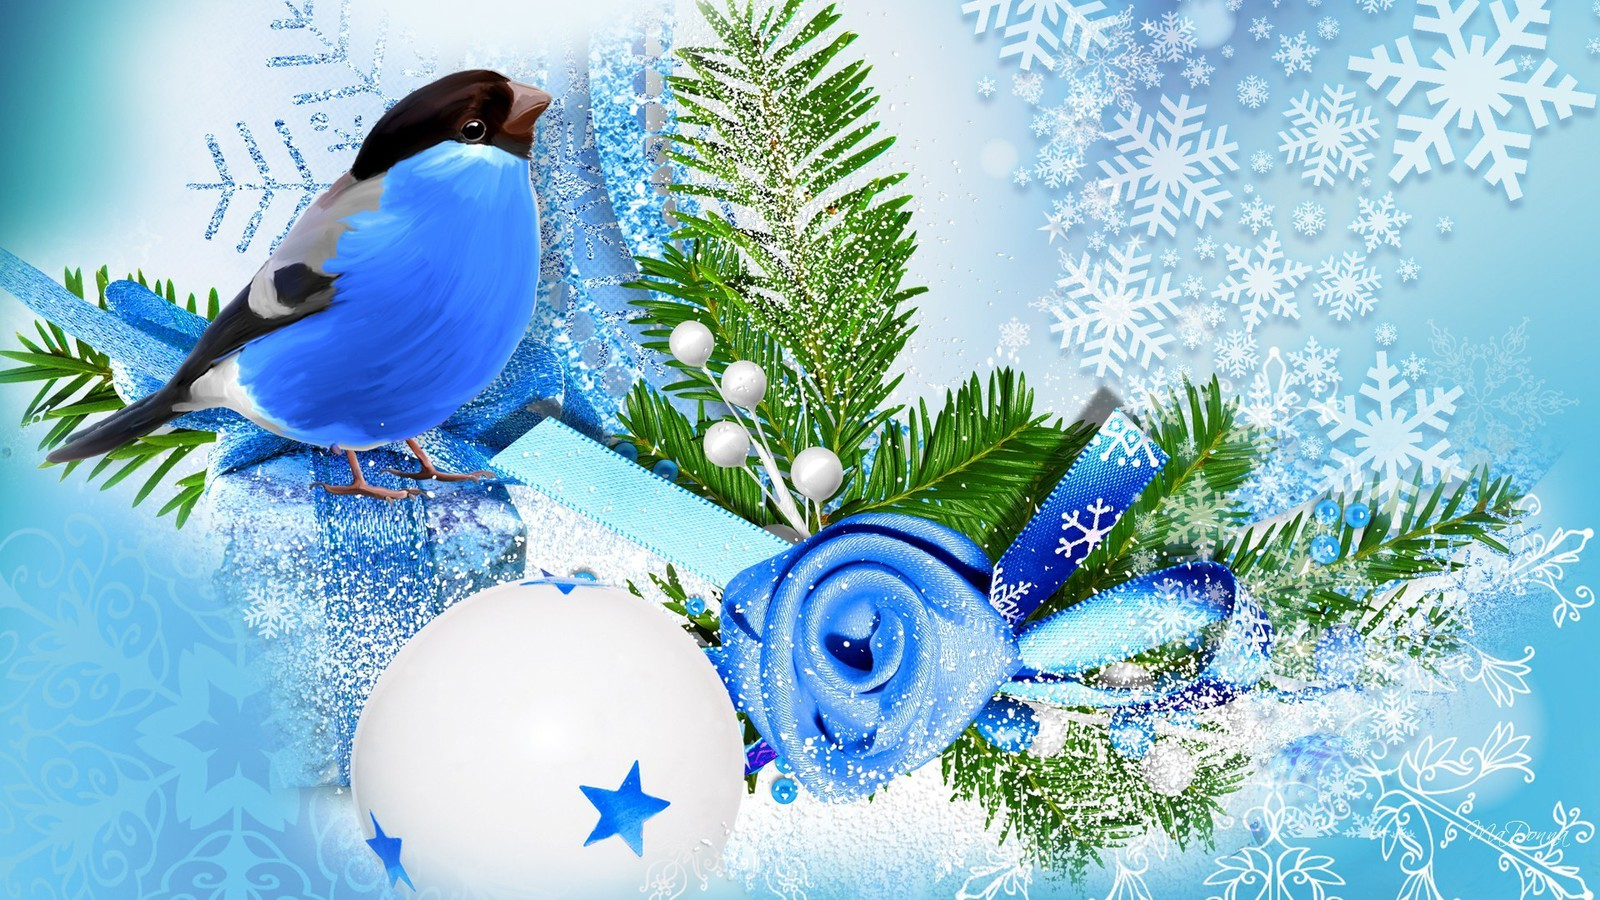 blue bird winter season wallpaper allwallpaperin 13964